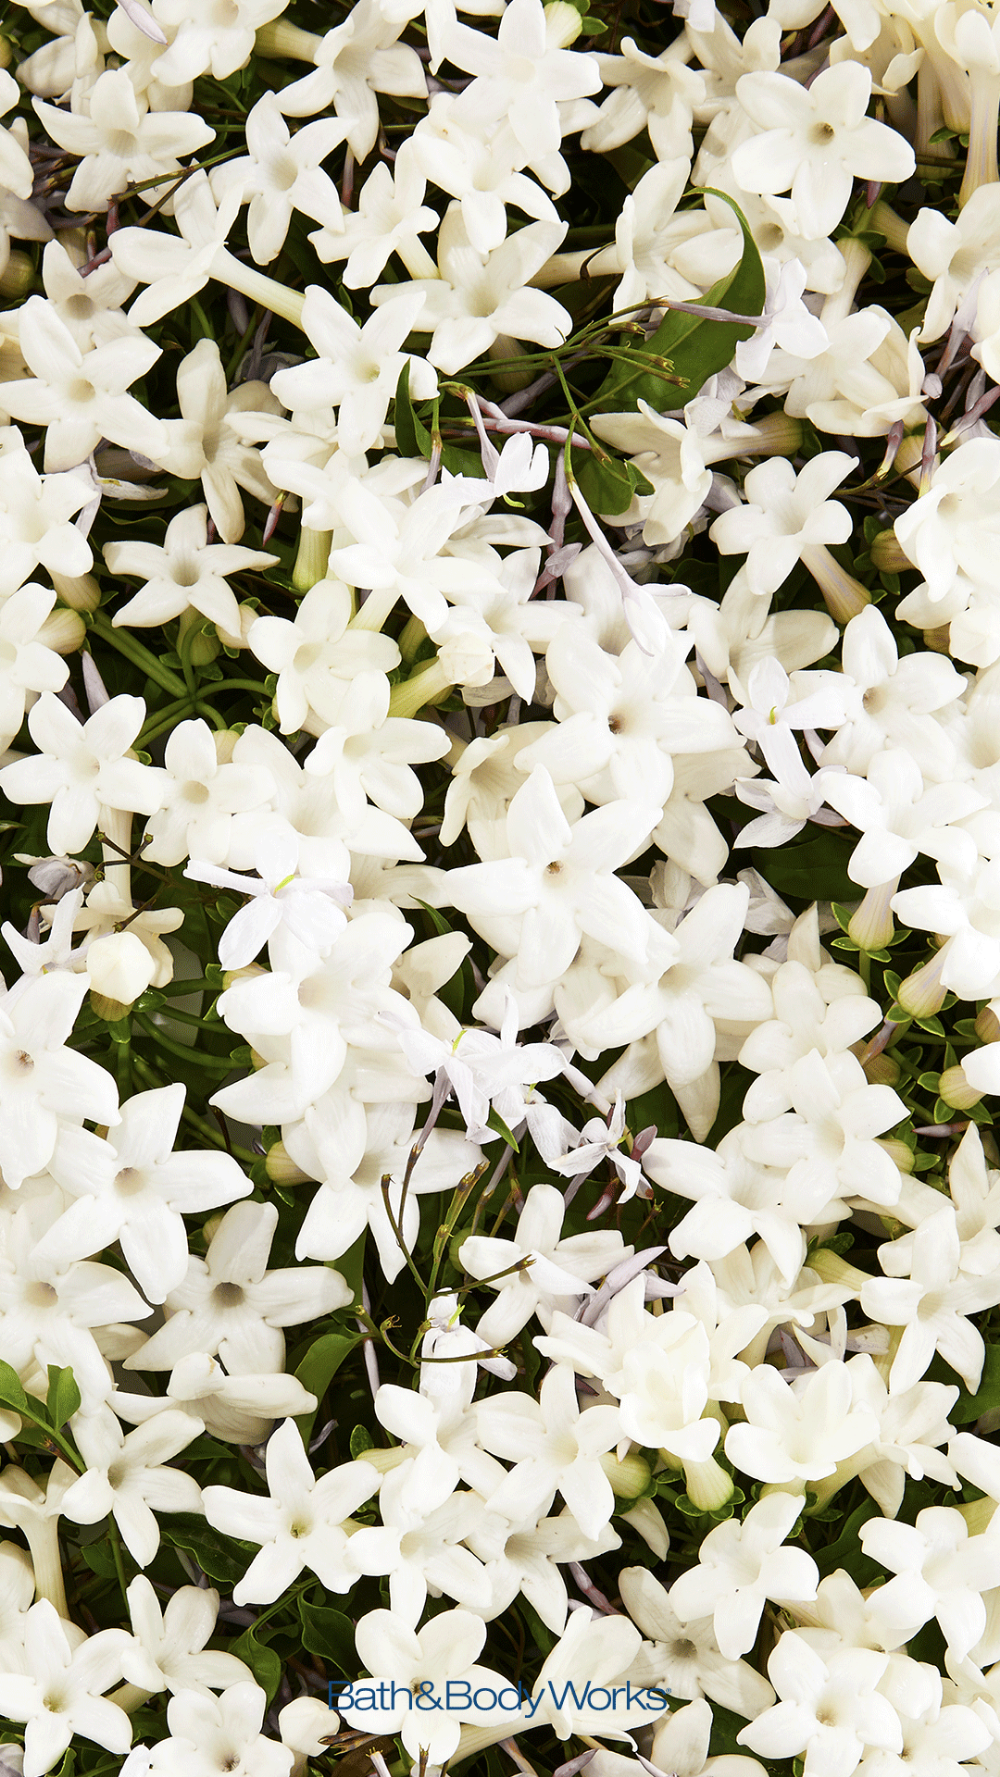 Jasmine Iphone Wallpaper Background Flower Backgrounds Flower